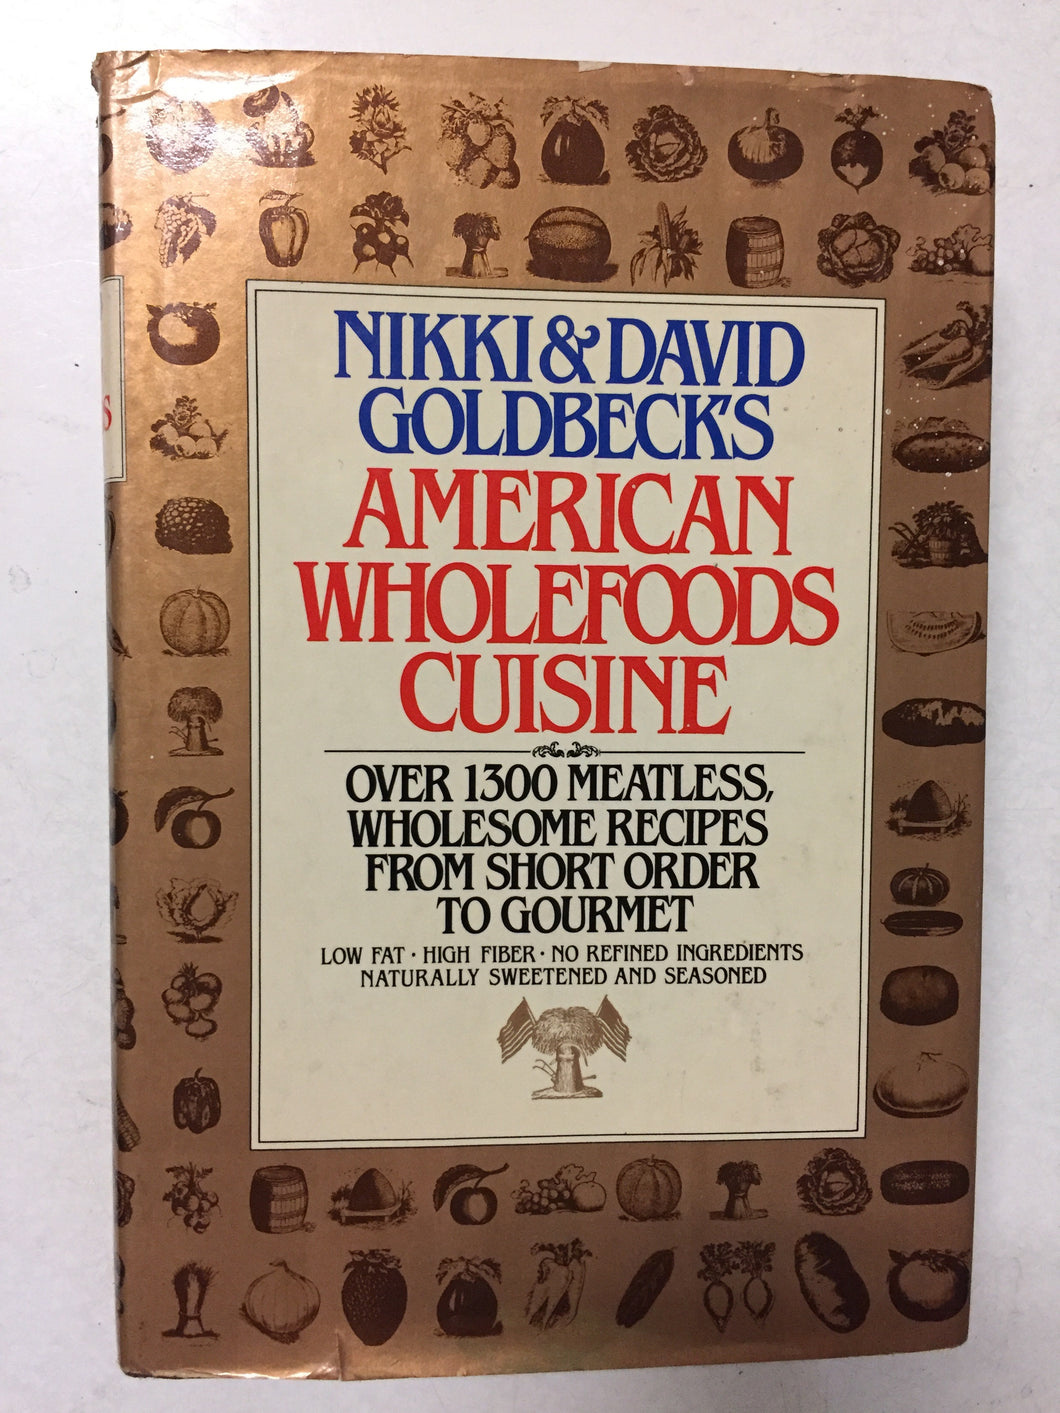 Nikki & David Goldbeck's American Wholefoods Cuisine Over 1300 Meatless, Wholesome Recipes From Short Order to Gourmet - Slickcatbooks